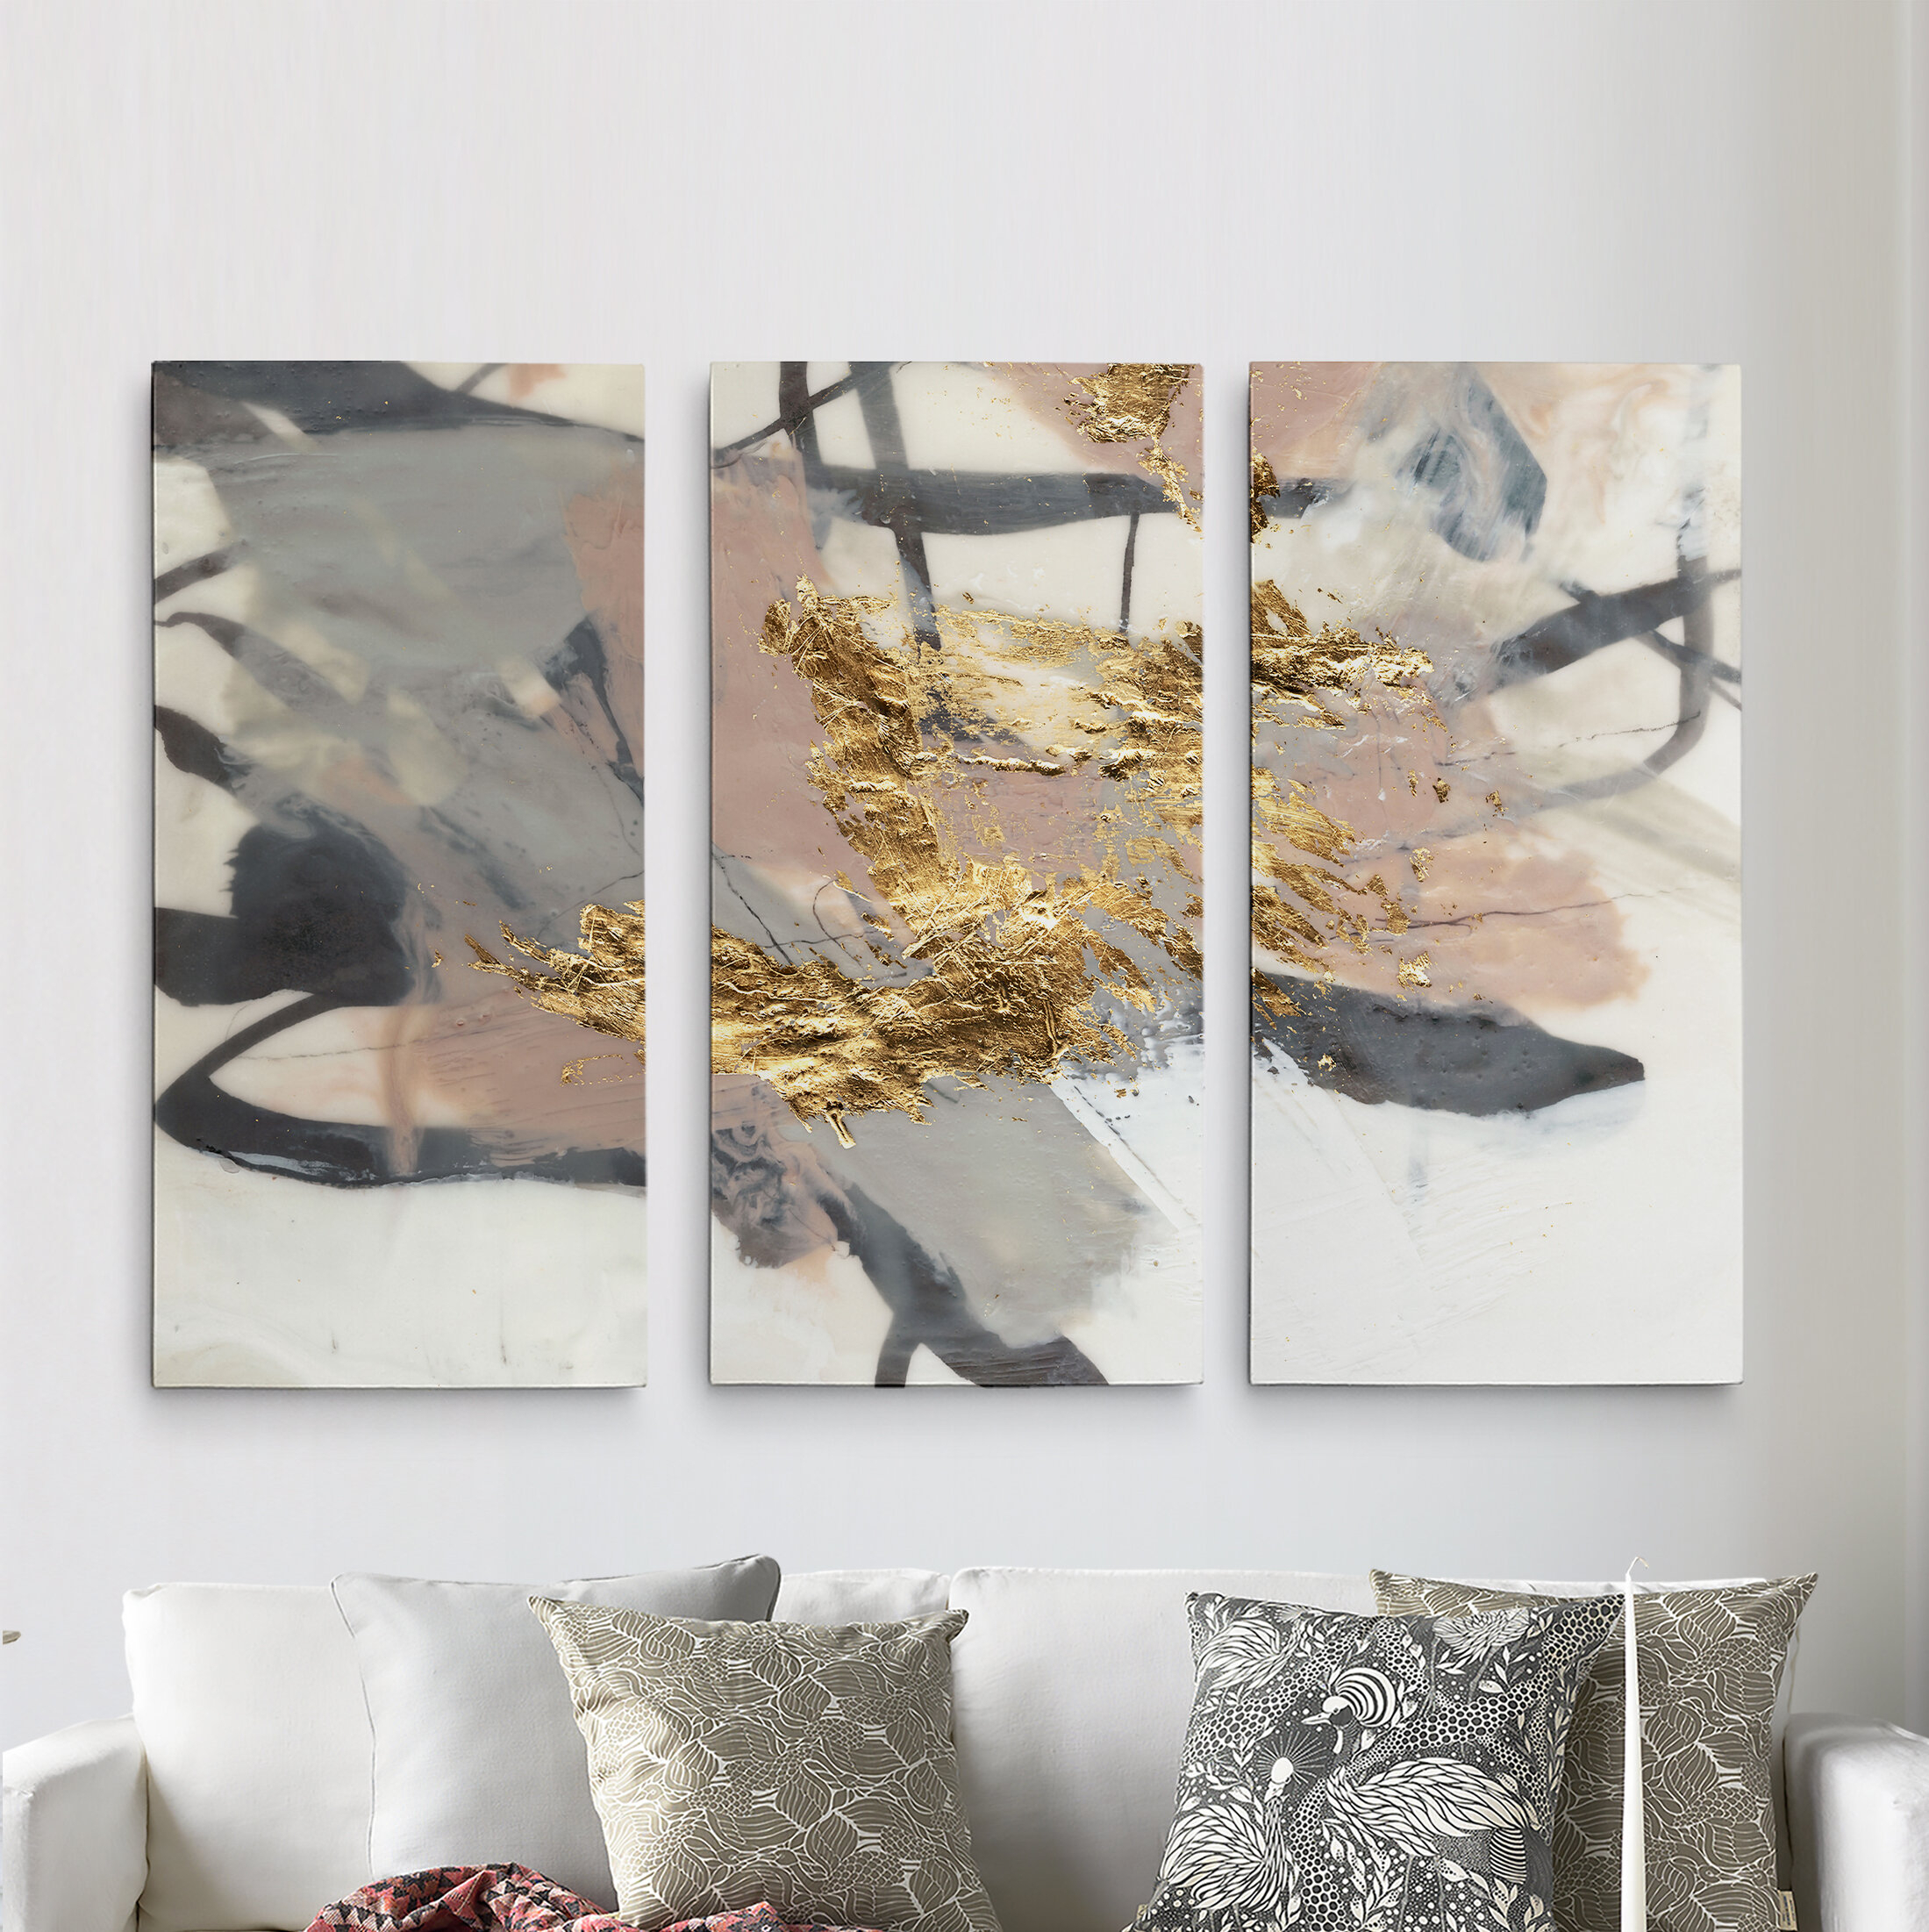 3 Piece Wall Art You'll Love In 2019 | Wayfair with 3 Piece Wall Decor Sets by Wrought Studio (Image 15 of 30)